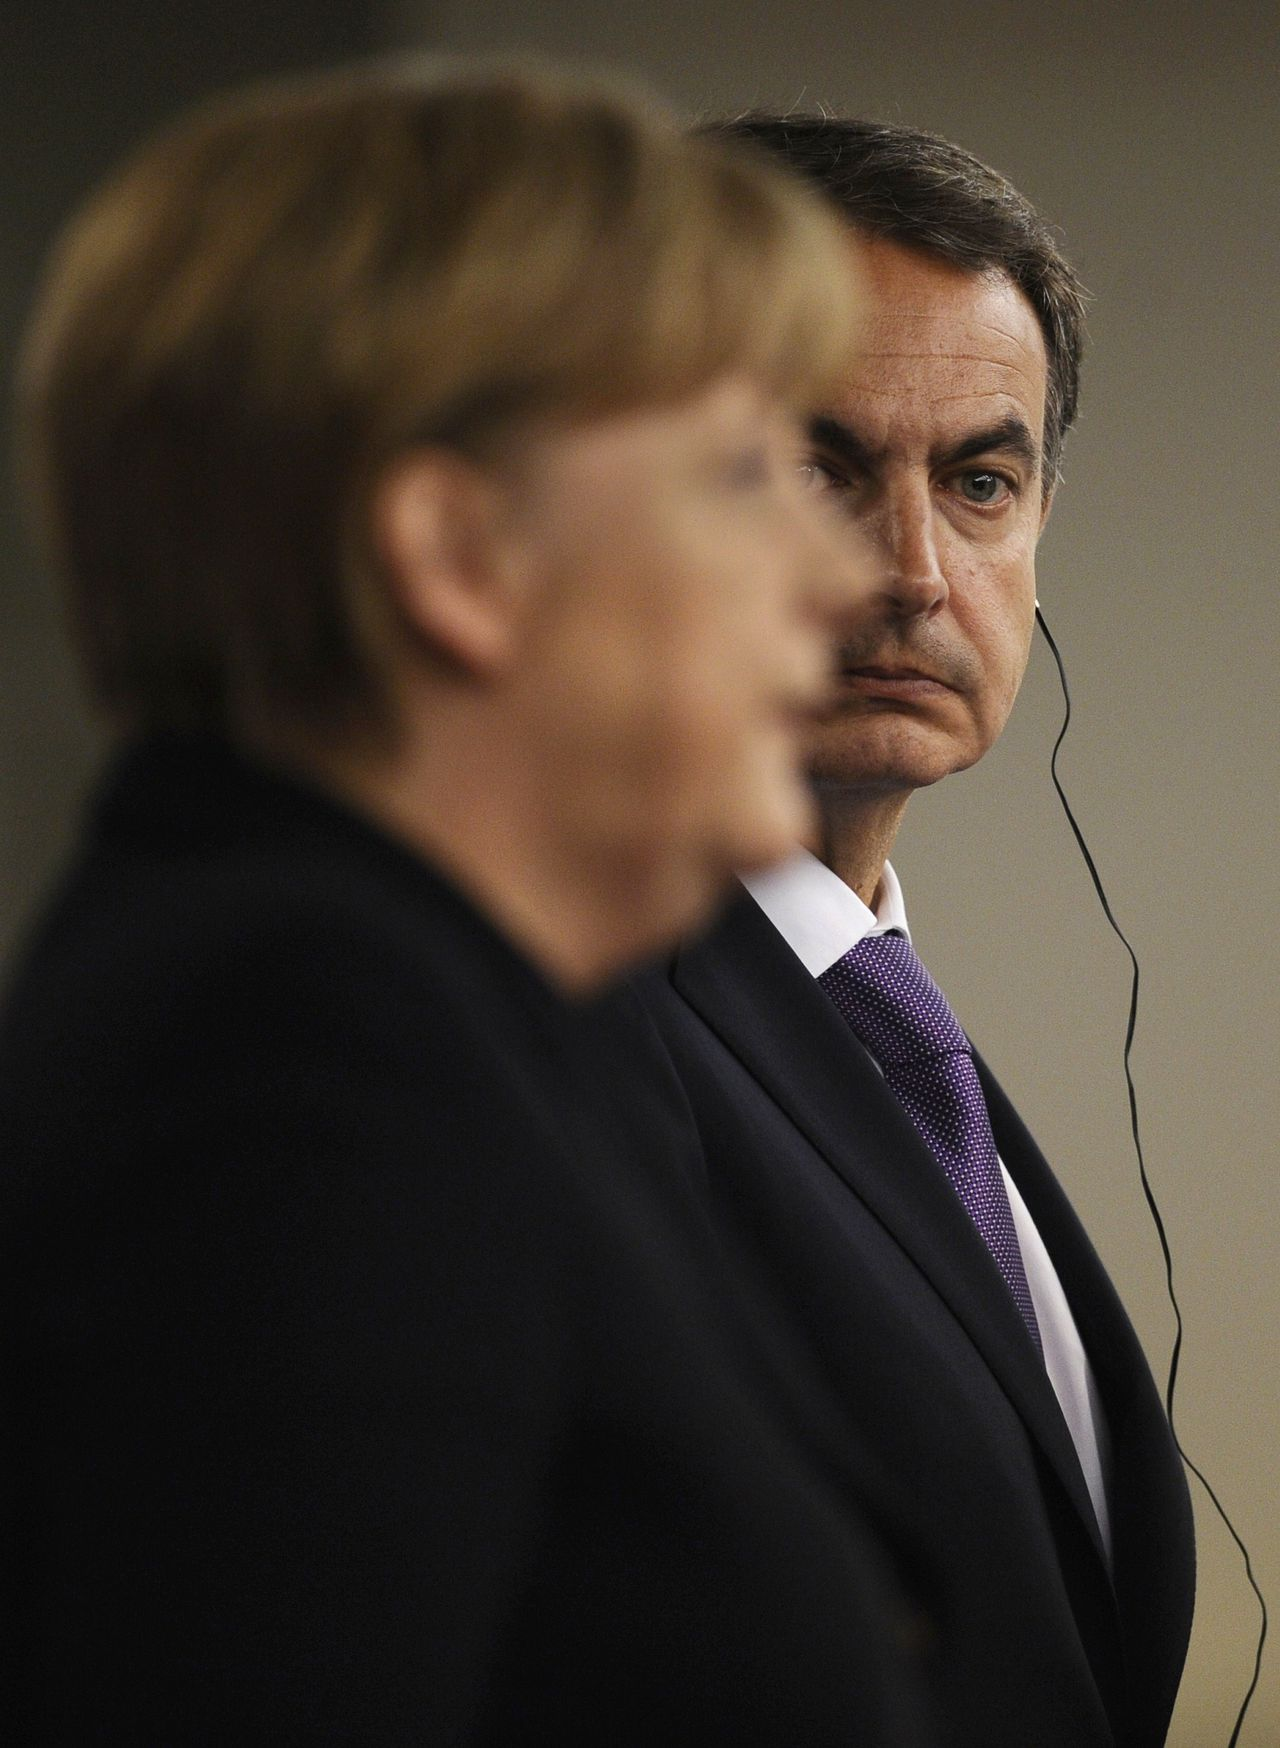 Spain's President of Government Jose Luis Rodriguez Zapatero (R) looks on as he gives a joint press conference with German Chancellor Angela Merkel during a Spain-Germany summit on February 3, 2011 at La Moncloa palace, in Madrid. AFP PHOTO/ PIERRE-PHILIPPE MARCOU